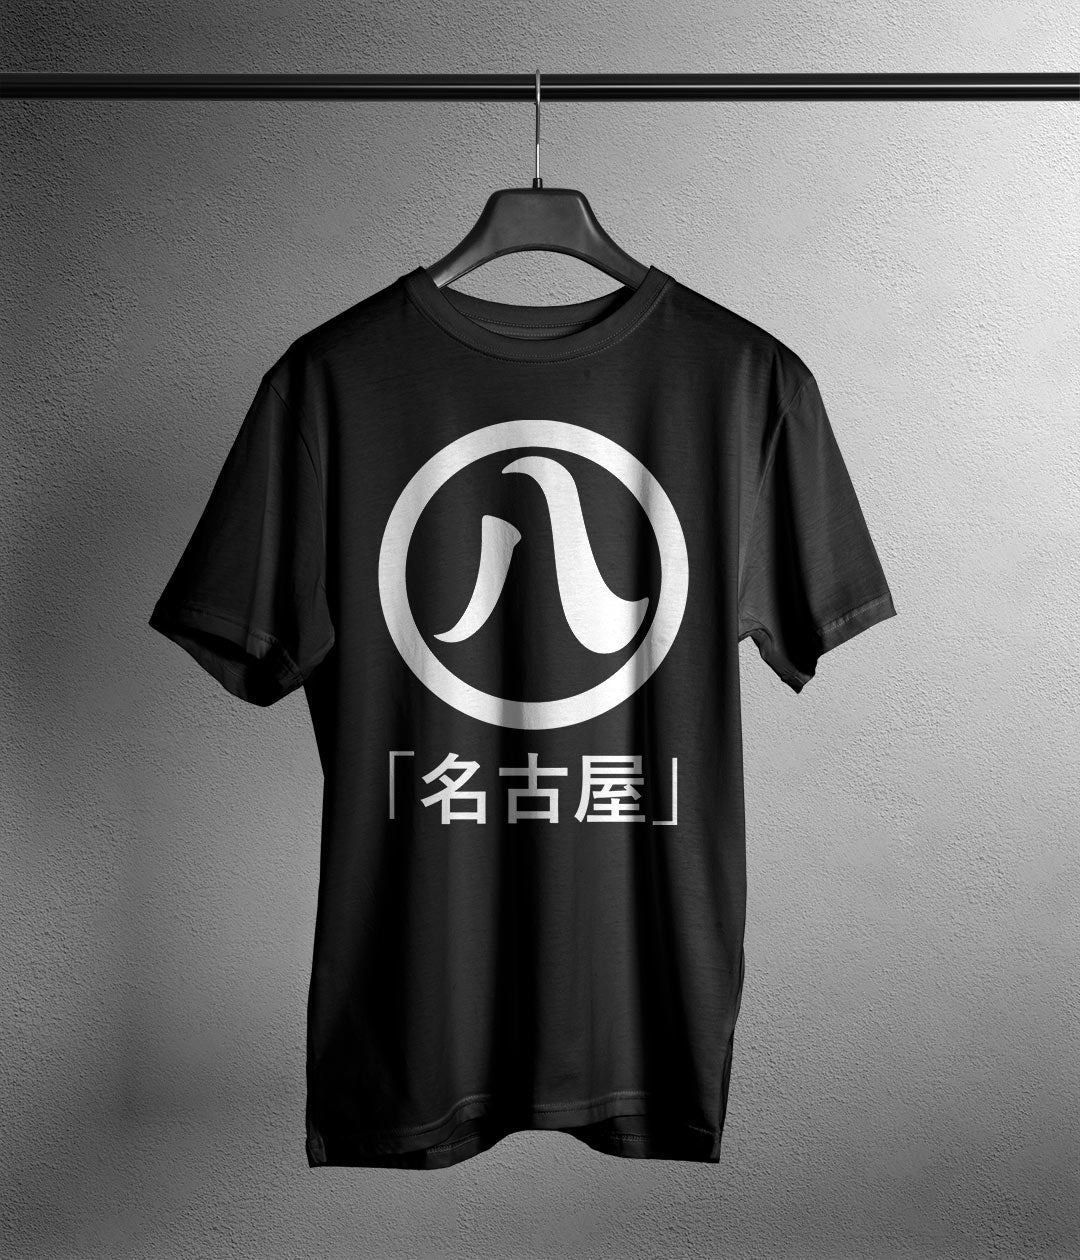 black t shirt with Nagoya crest and kanji in white